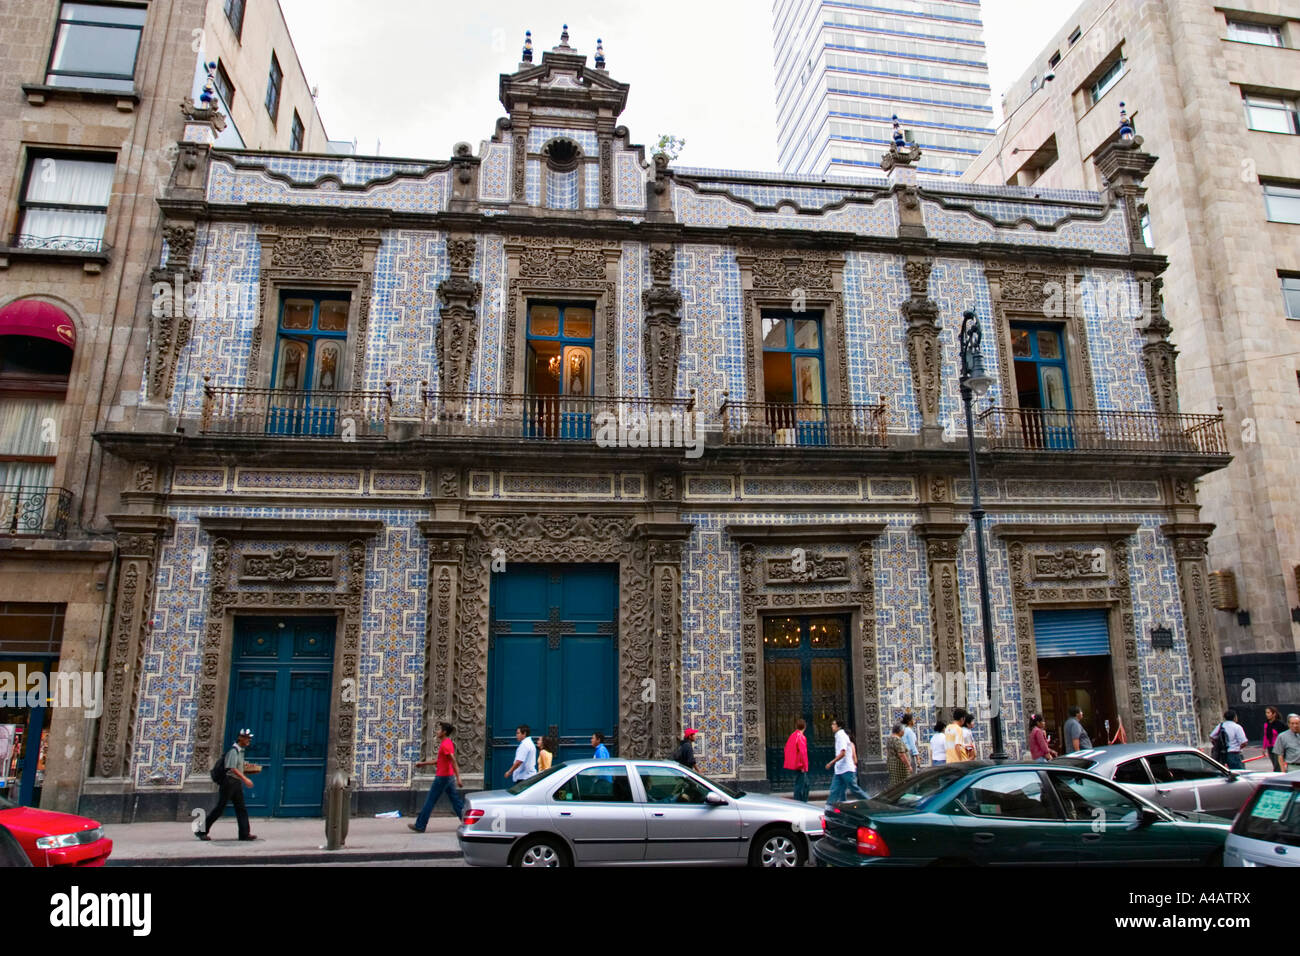 Casa de los azulejos mexico city mexico stock photo for Casa de azulejos mexico